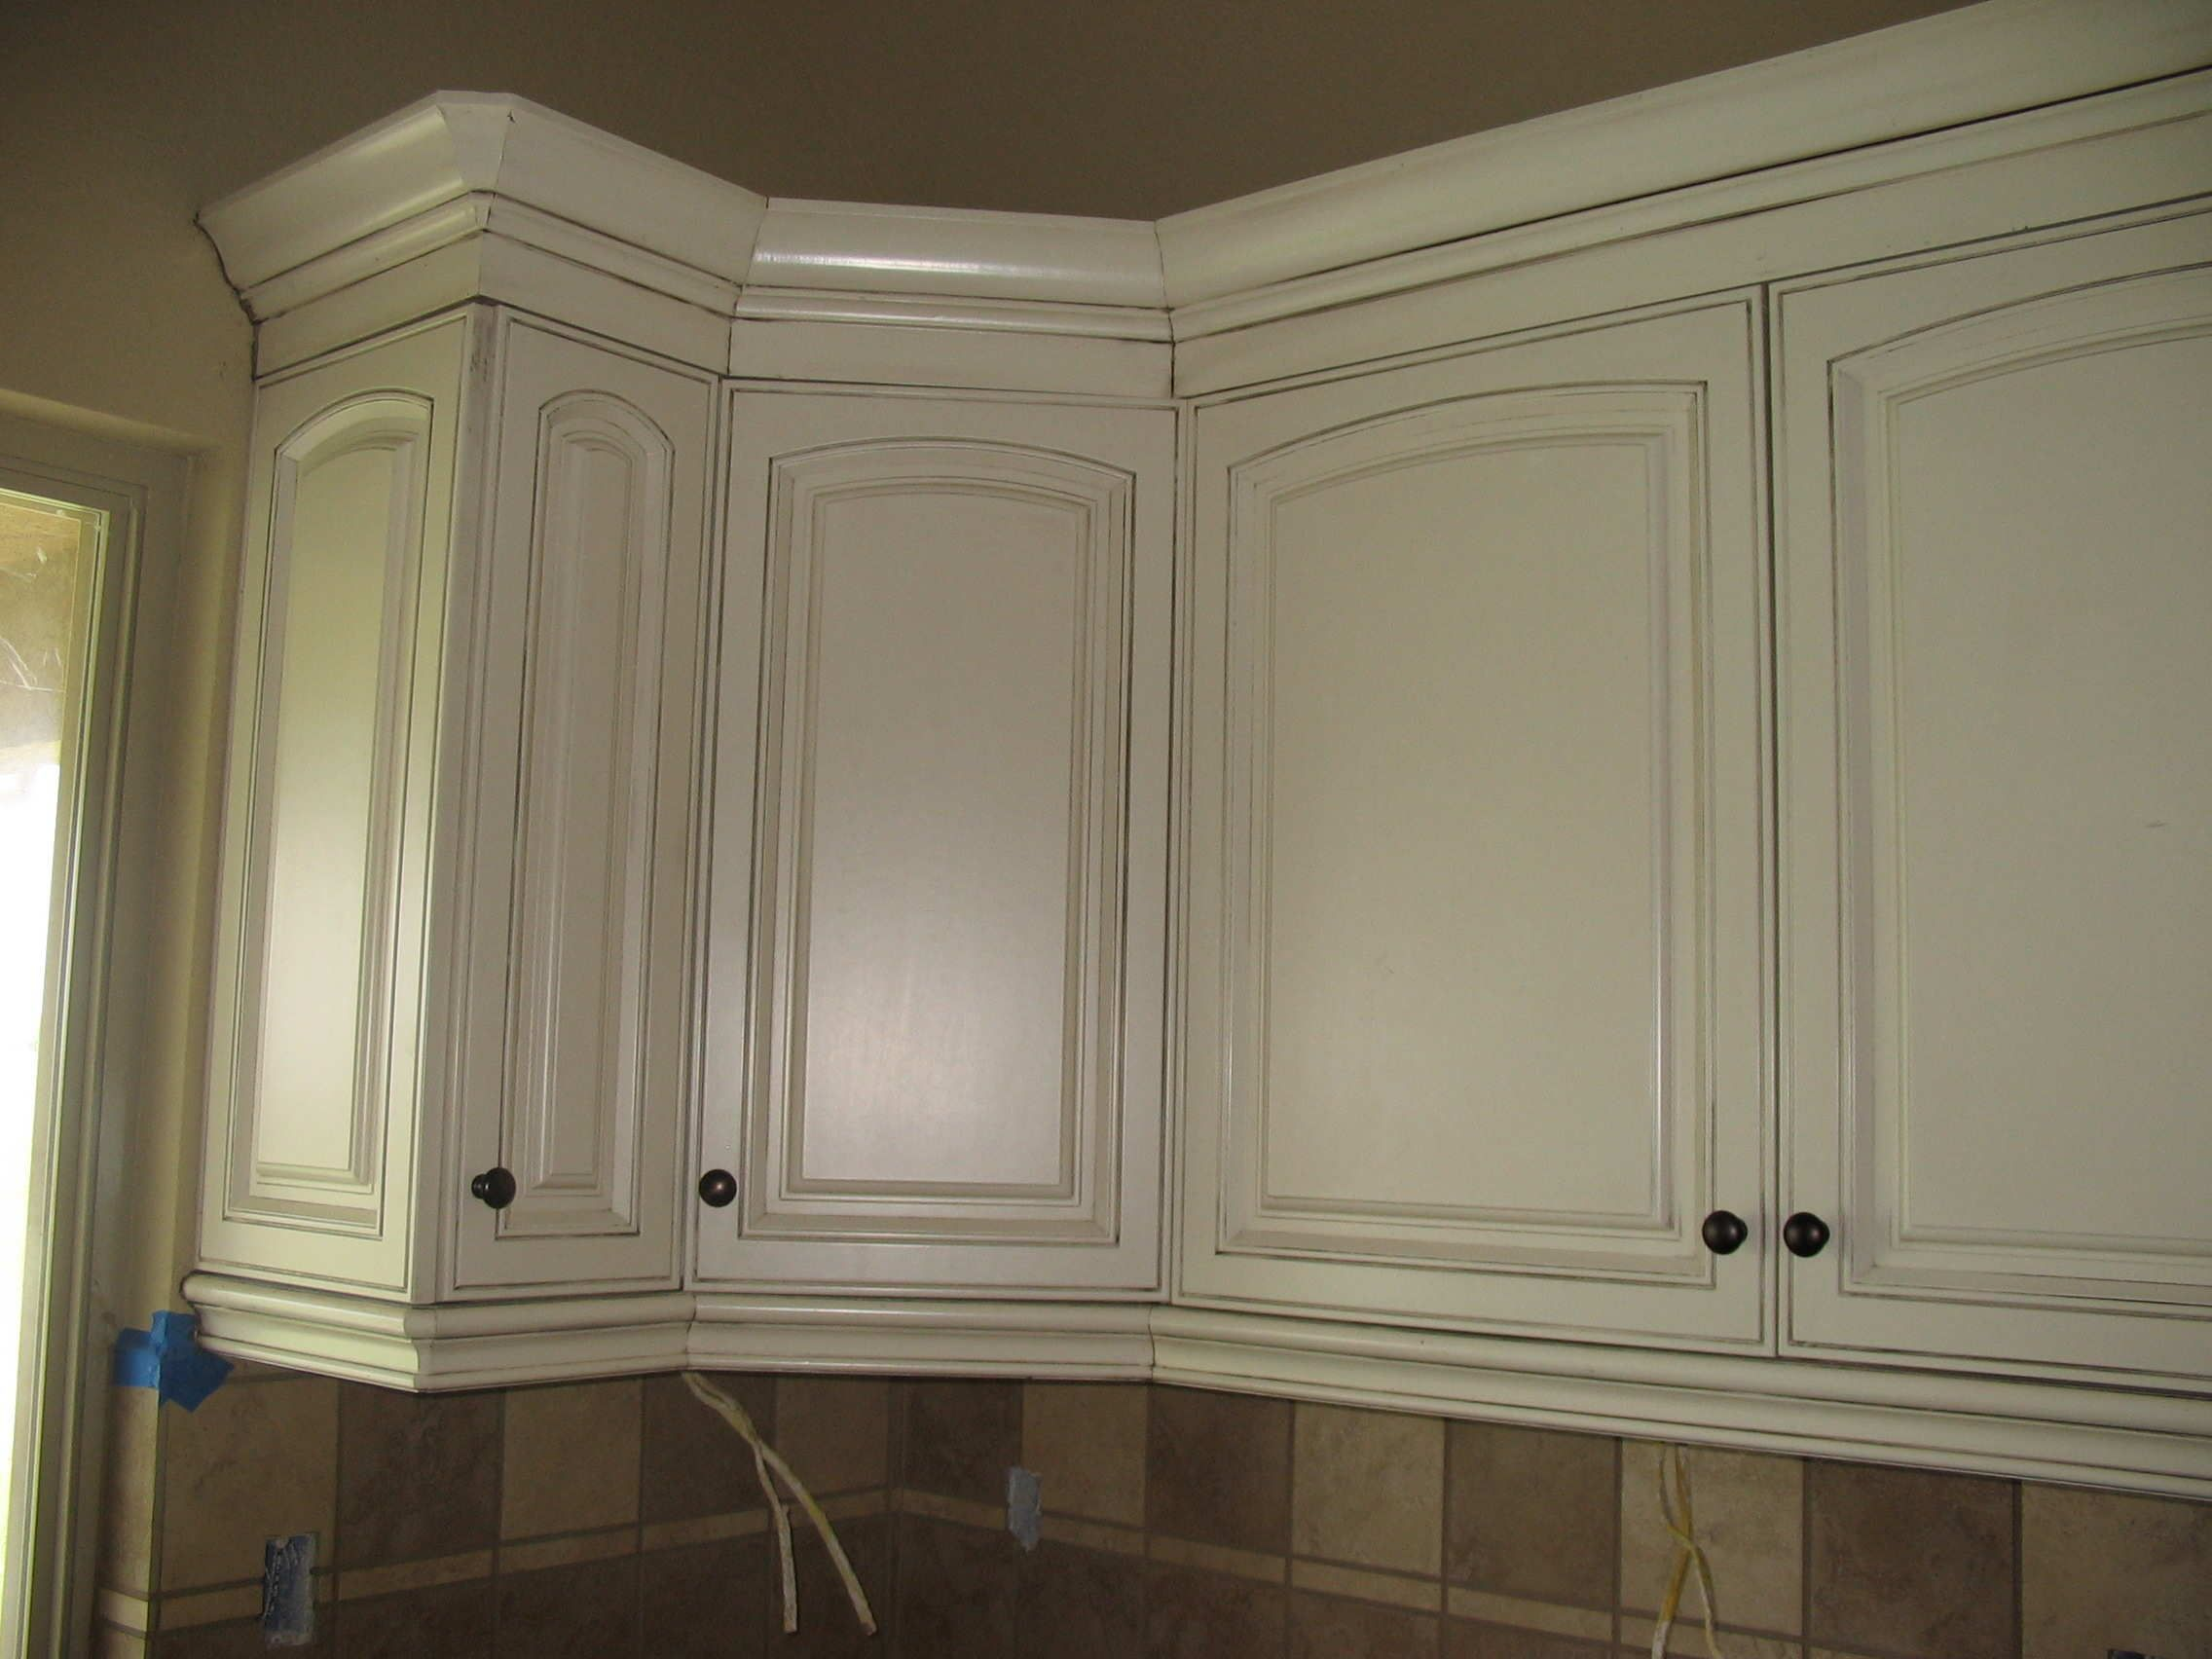 General Finishes Java Gel Stain Kitchen Cabinets Best Staining Kitchen Cabinets Ideas Gel Stain Kitchen Cabinets Stained Kitchen Cabinets Staining Cabinets